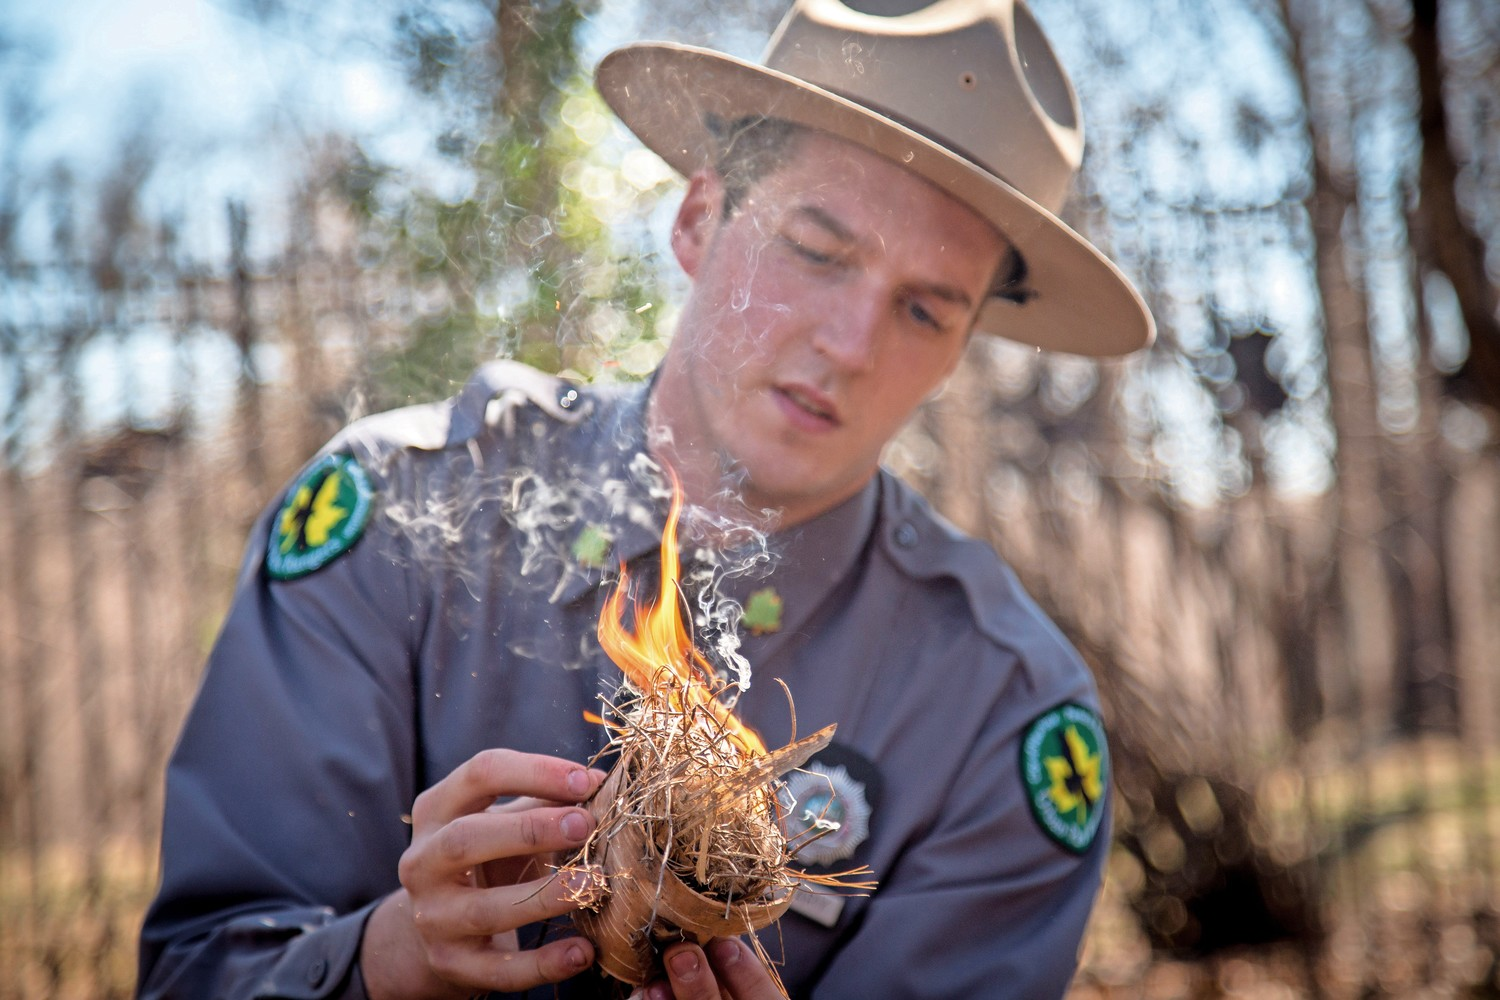 Ian Cleary, an urban park ranger, demonstrates how to use tinder, cattail, white birch, and phragmites to start a fire in the ?Survival Series? workshop in Van Cortlandt Park.